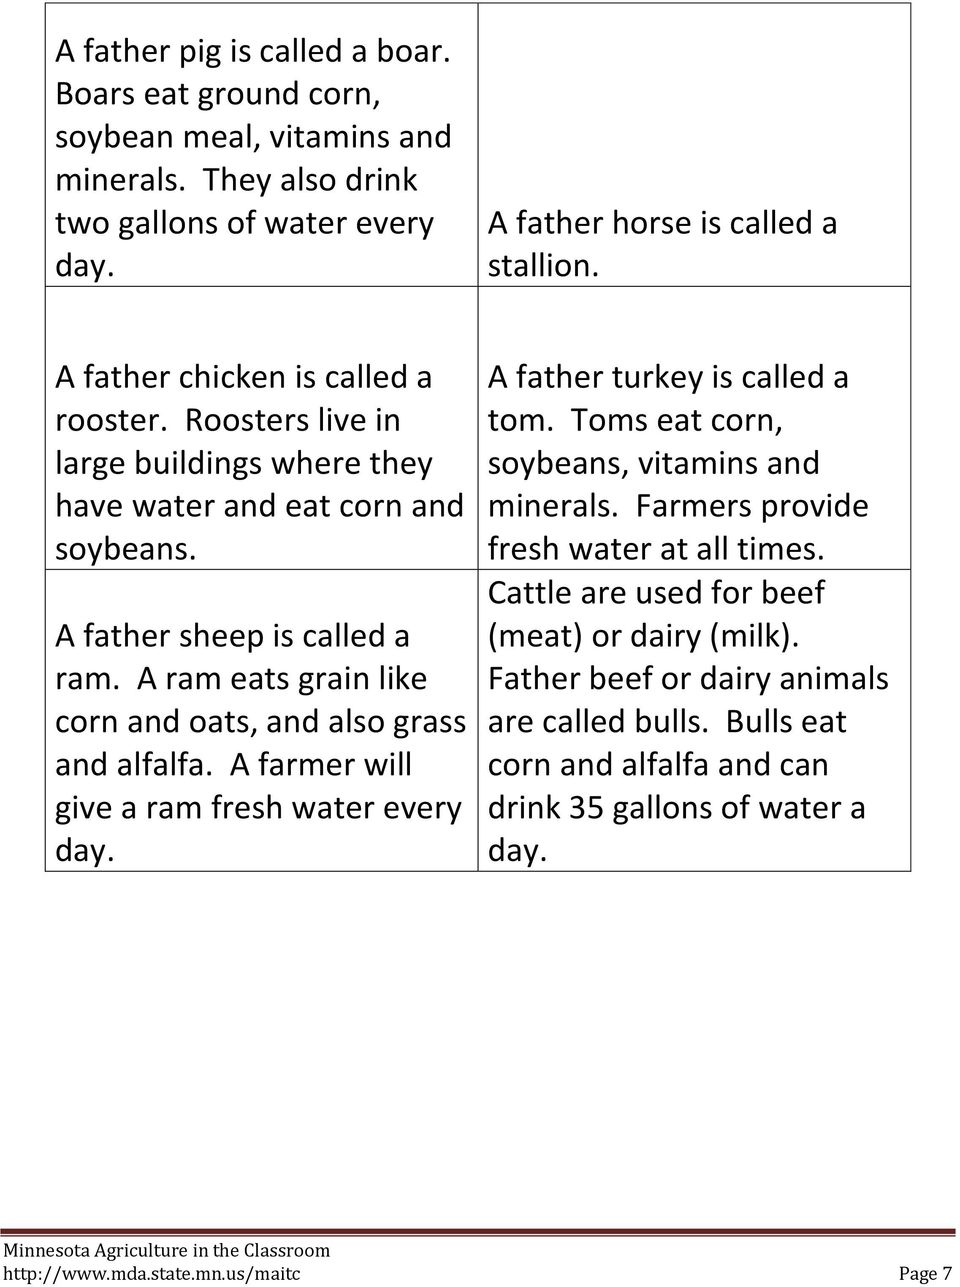 A ram eats grain like corn and oats, and also grass and alfalfa. A farmer will give a ram fresh water every day. A father turkey is called a tom.